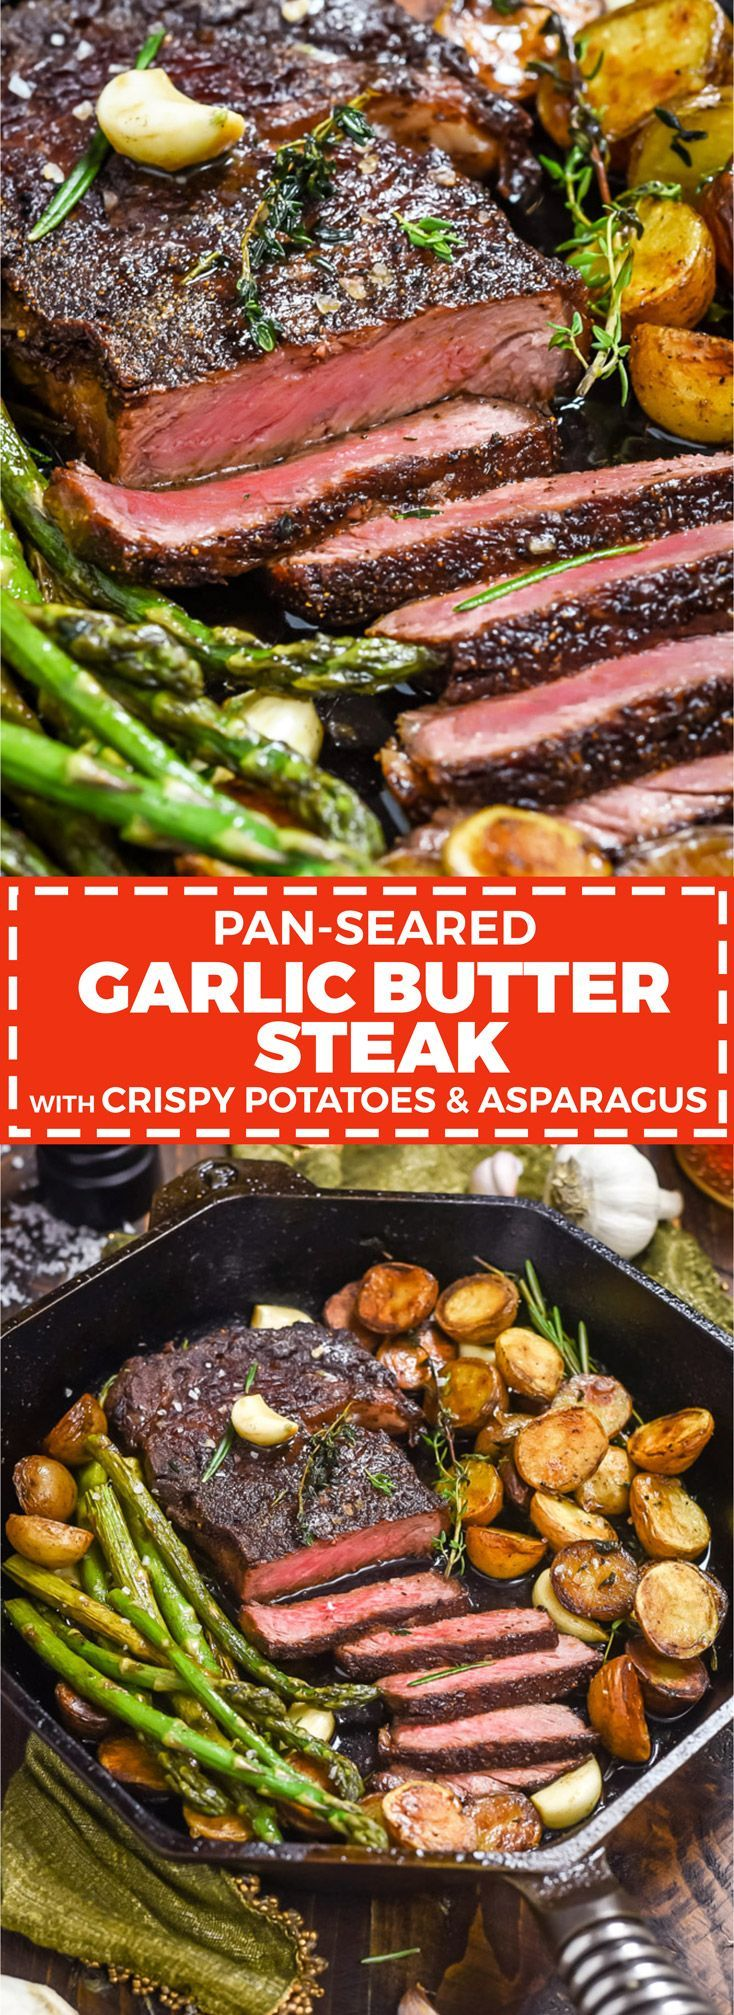 Pan-Fried Garlic Butter Steak with Crispy Potatoes and Asparagus -